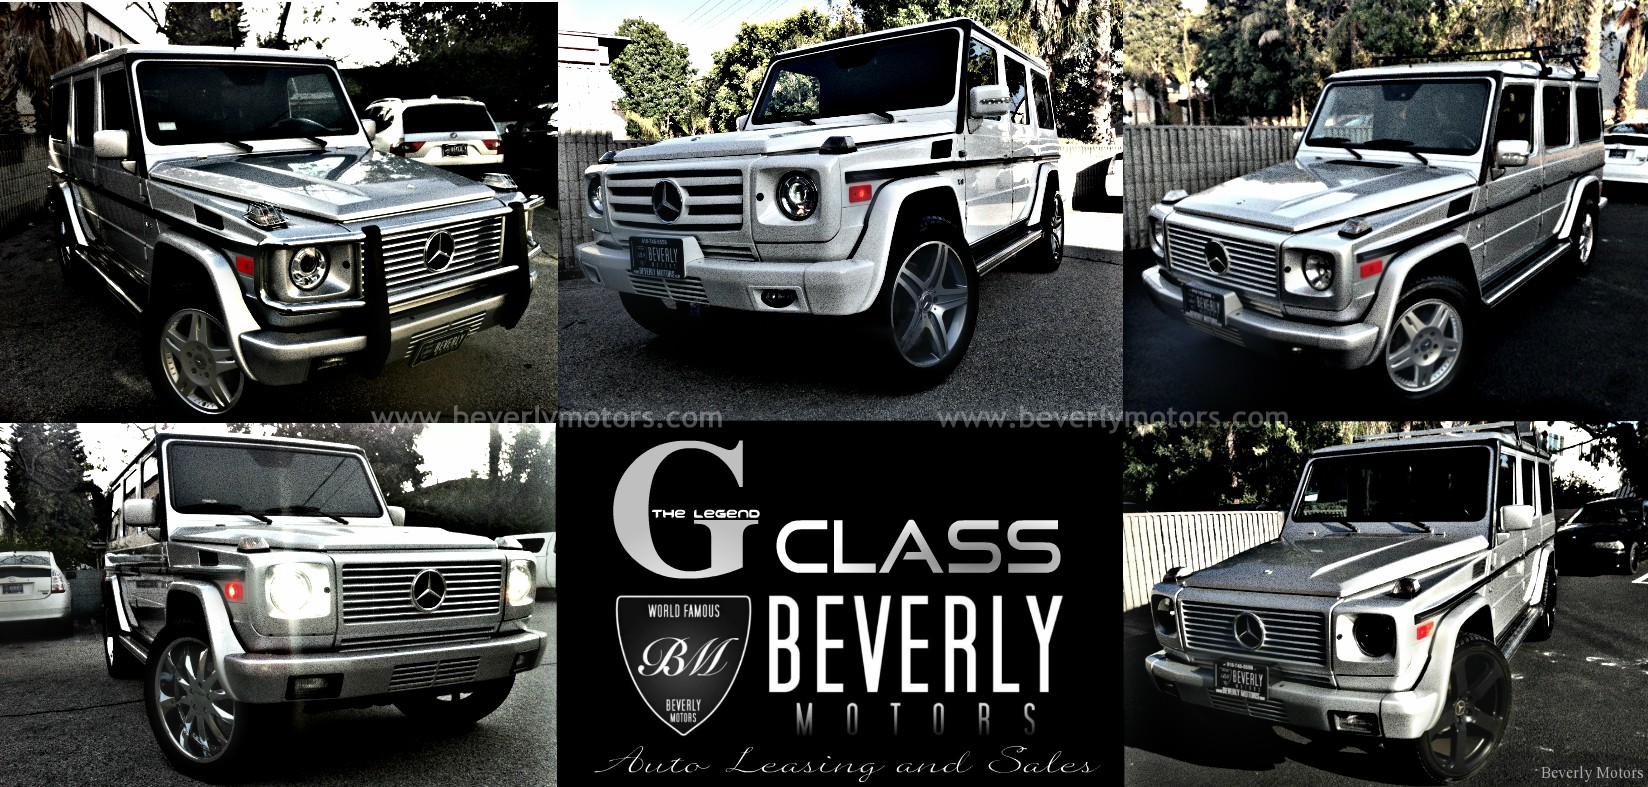 Mercedes benz g500 g55 amg g63 g65 brabus g wagon gwagen gelik for sale glendale auto leasing and salesnew car lease in glendale burbank los angele